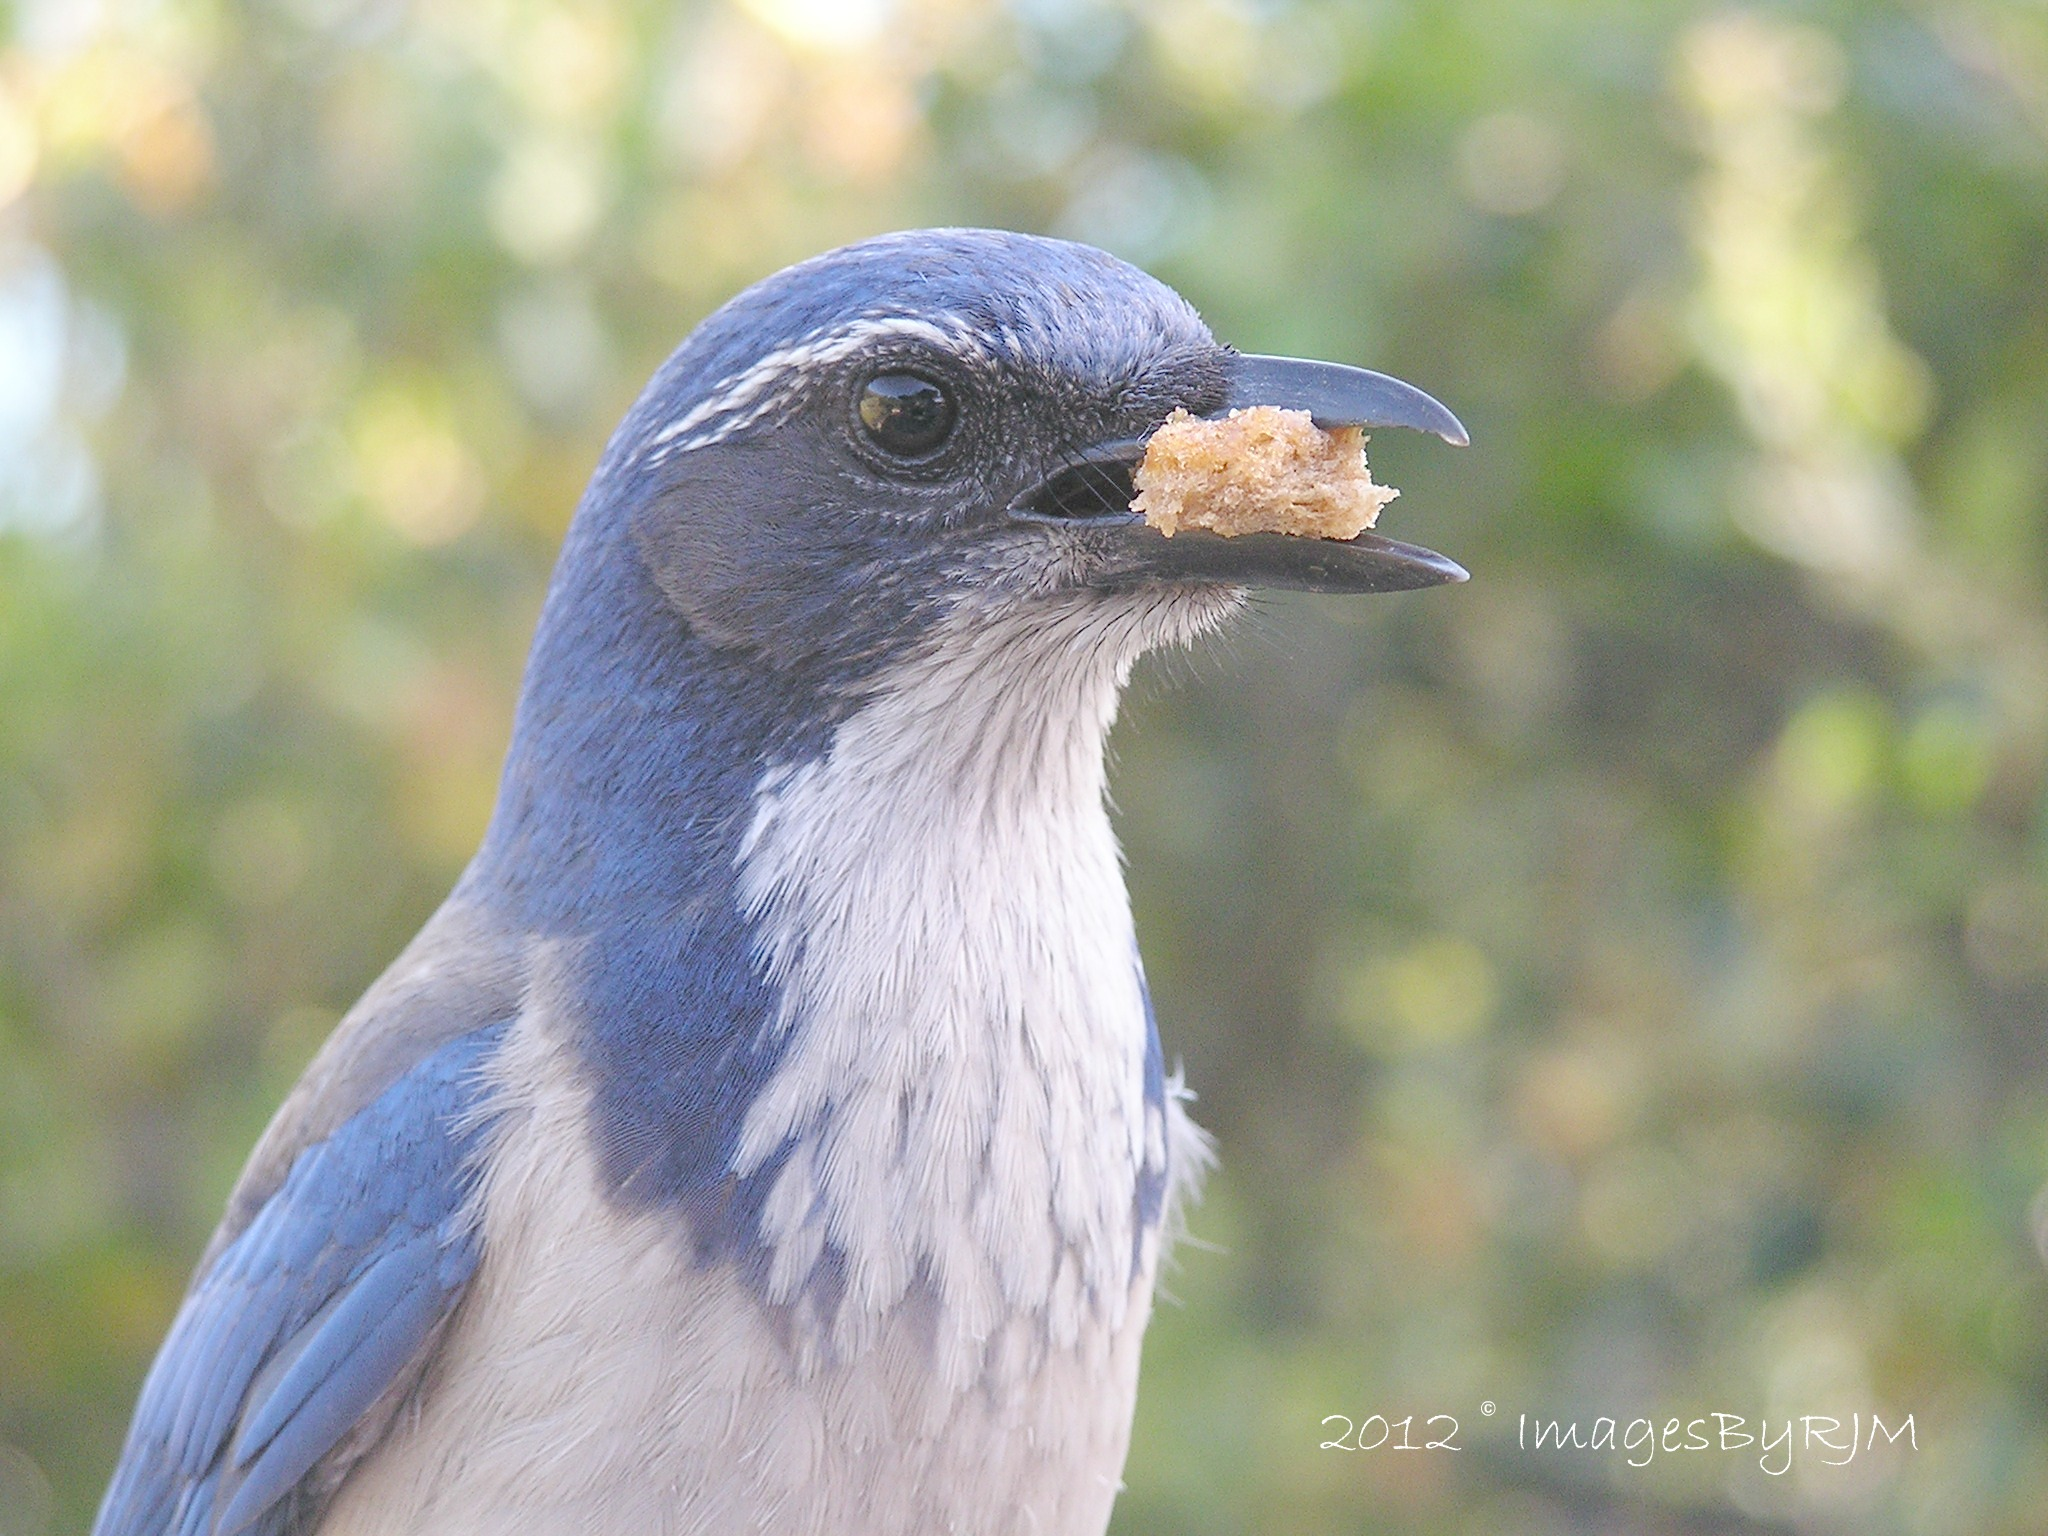 Closeup of blue and white bird holding crumb of bread in its beak, with bokeh background.